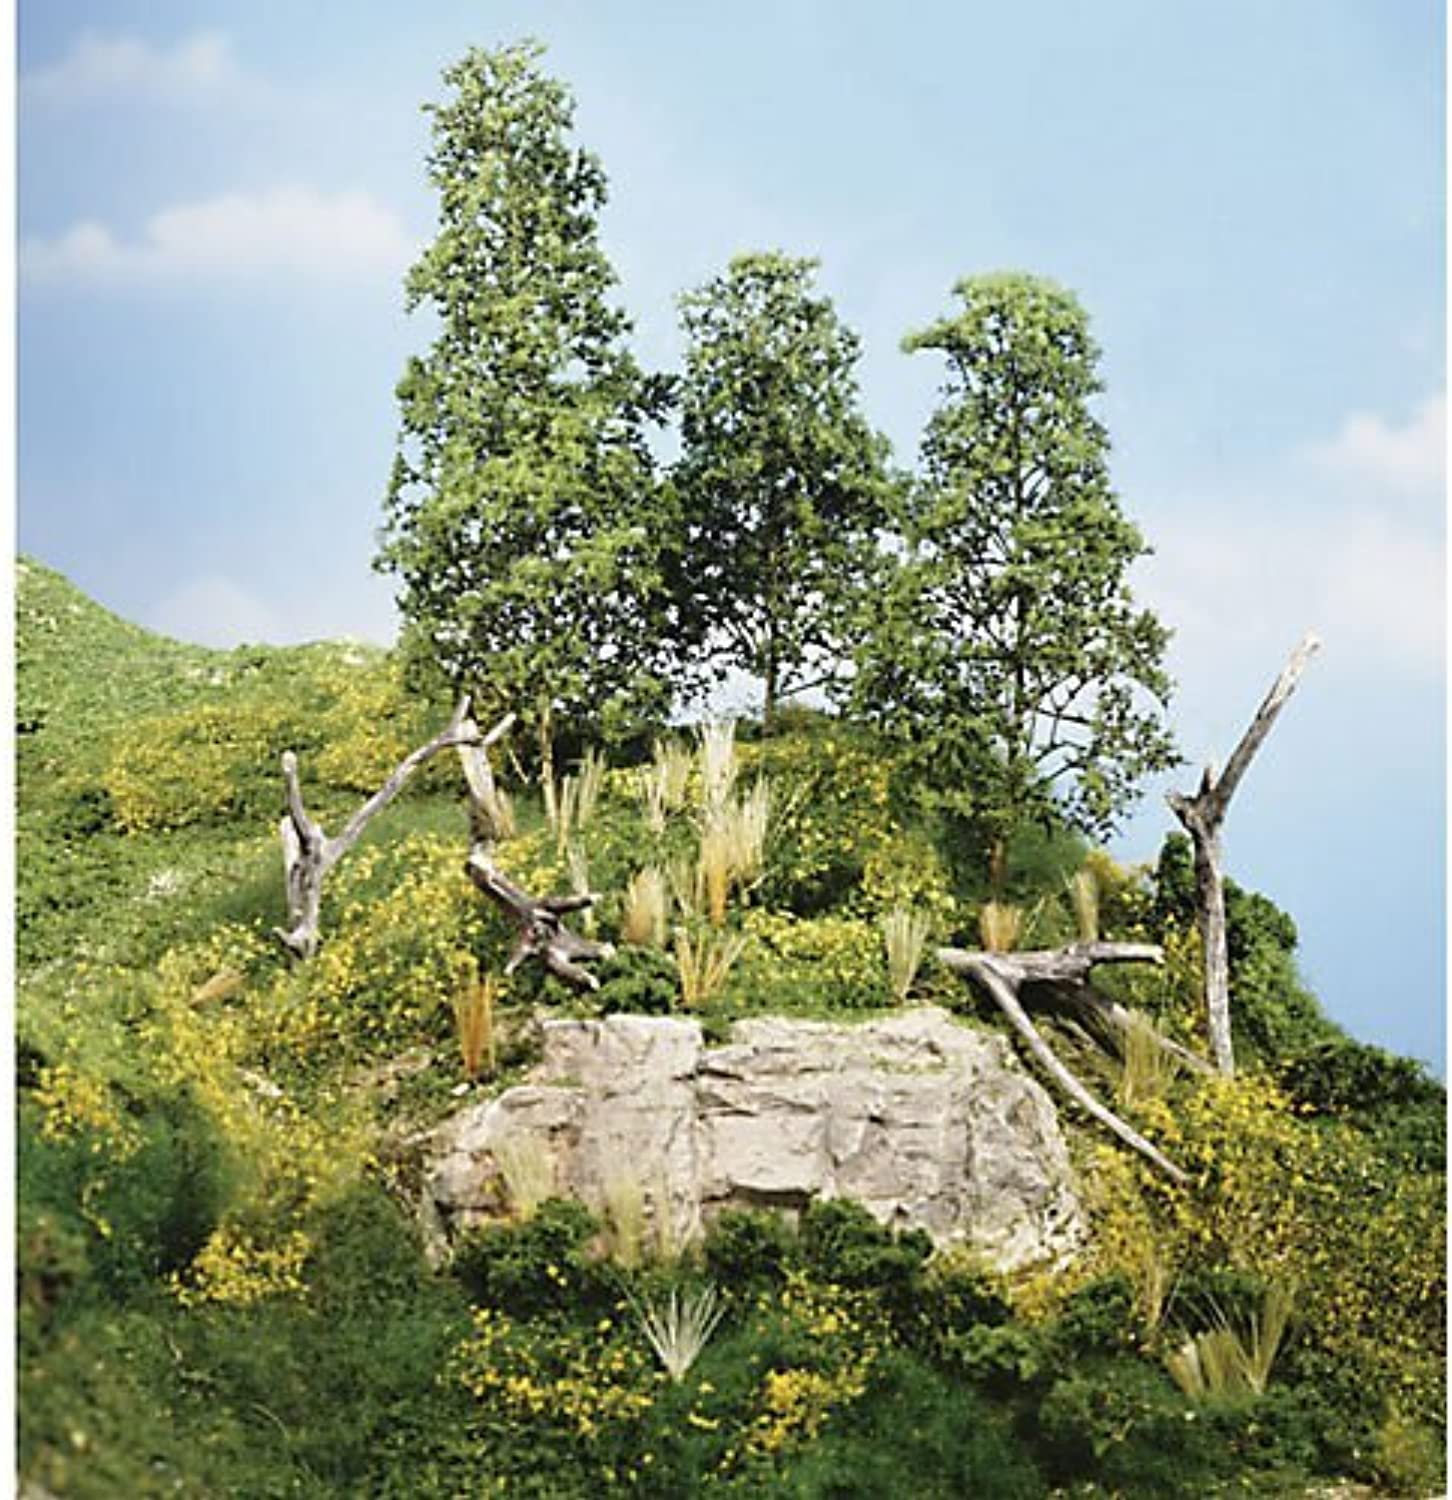 Scenic Learning Kit - Scenery Details by Woodland Scenics